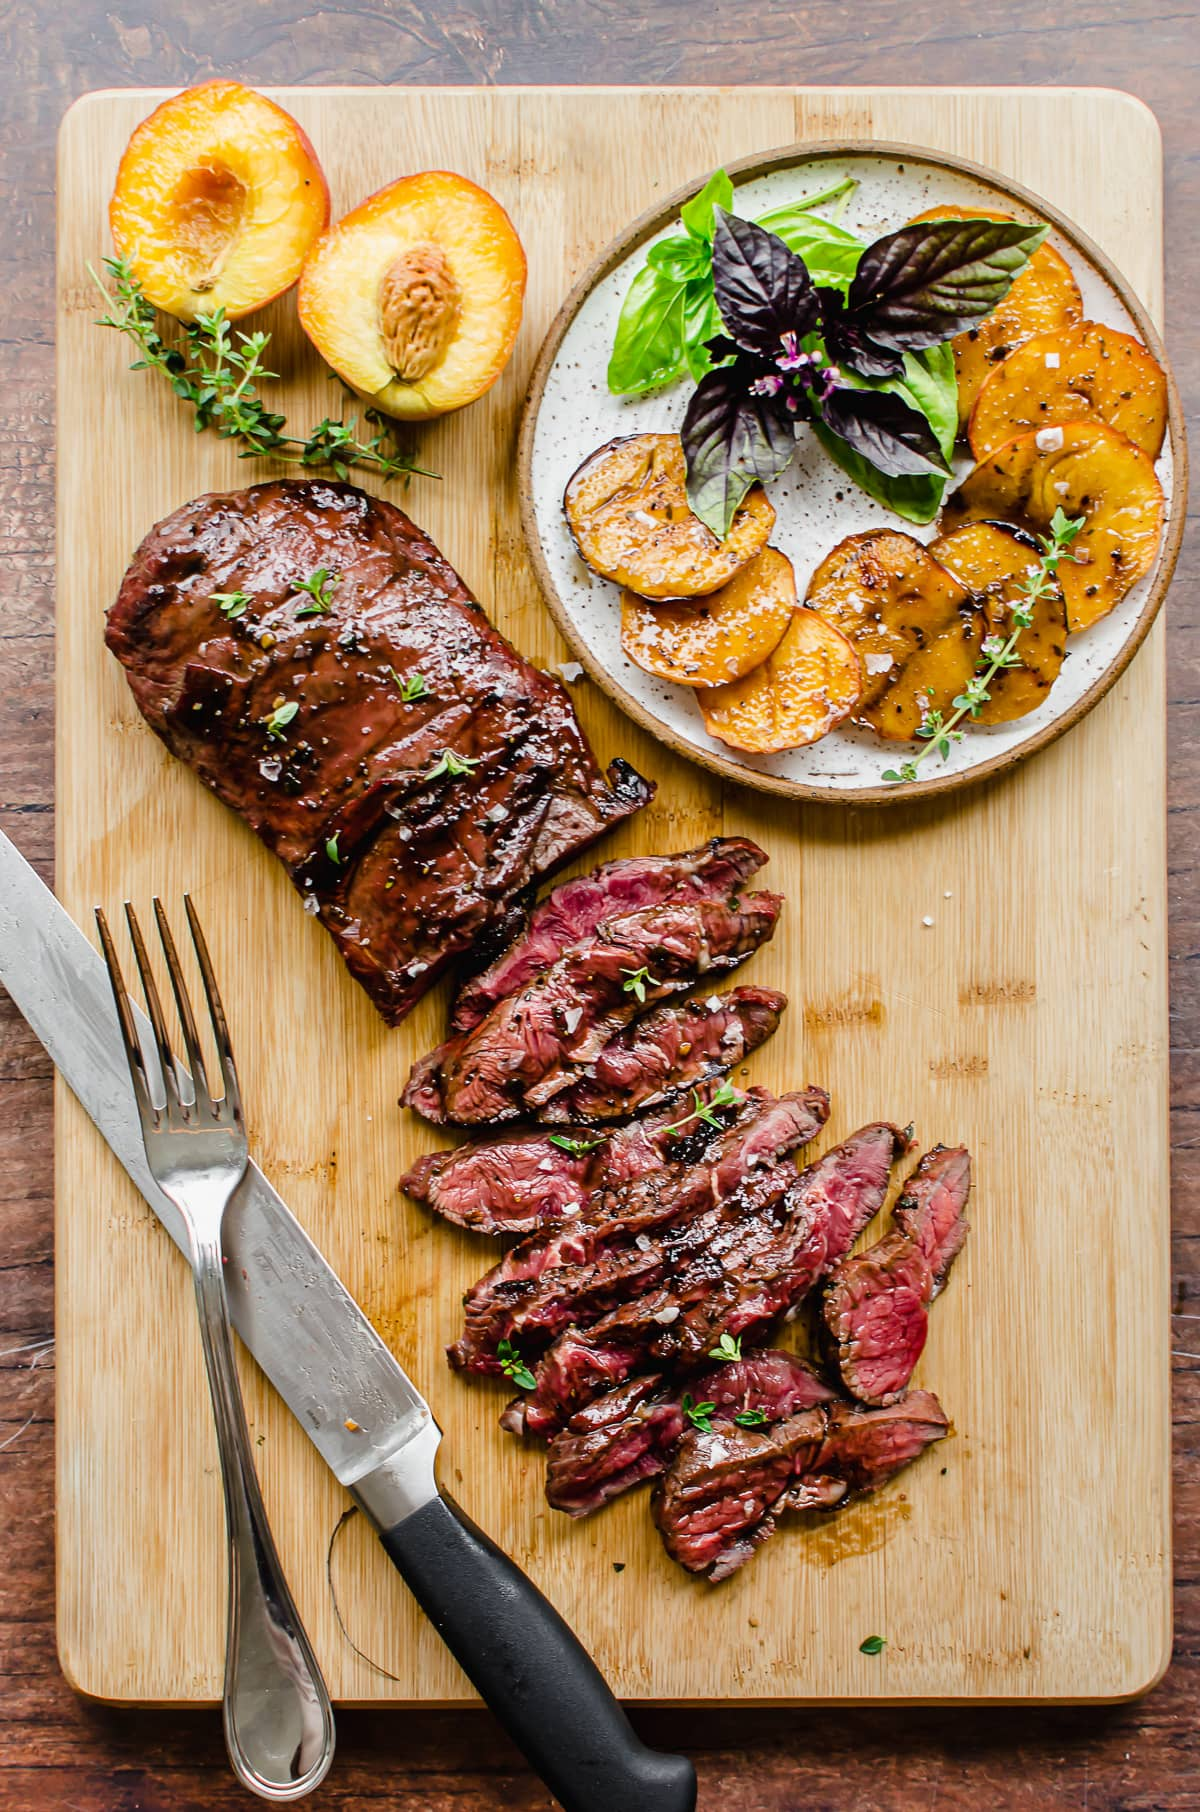 Overhead shot of balsamic steak being sliced on a cutting board with a plate of peaches and basil on the side.